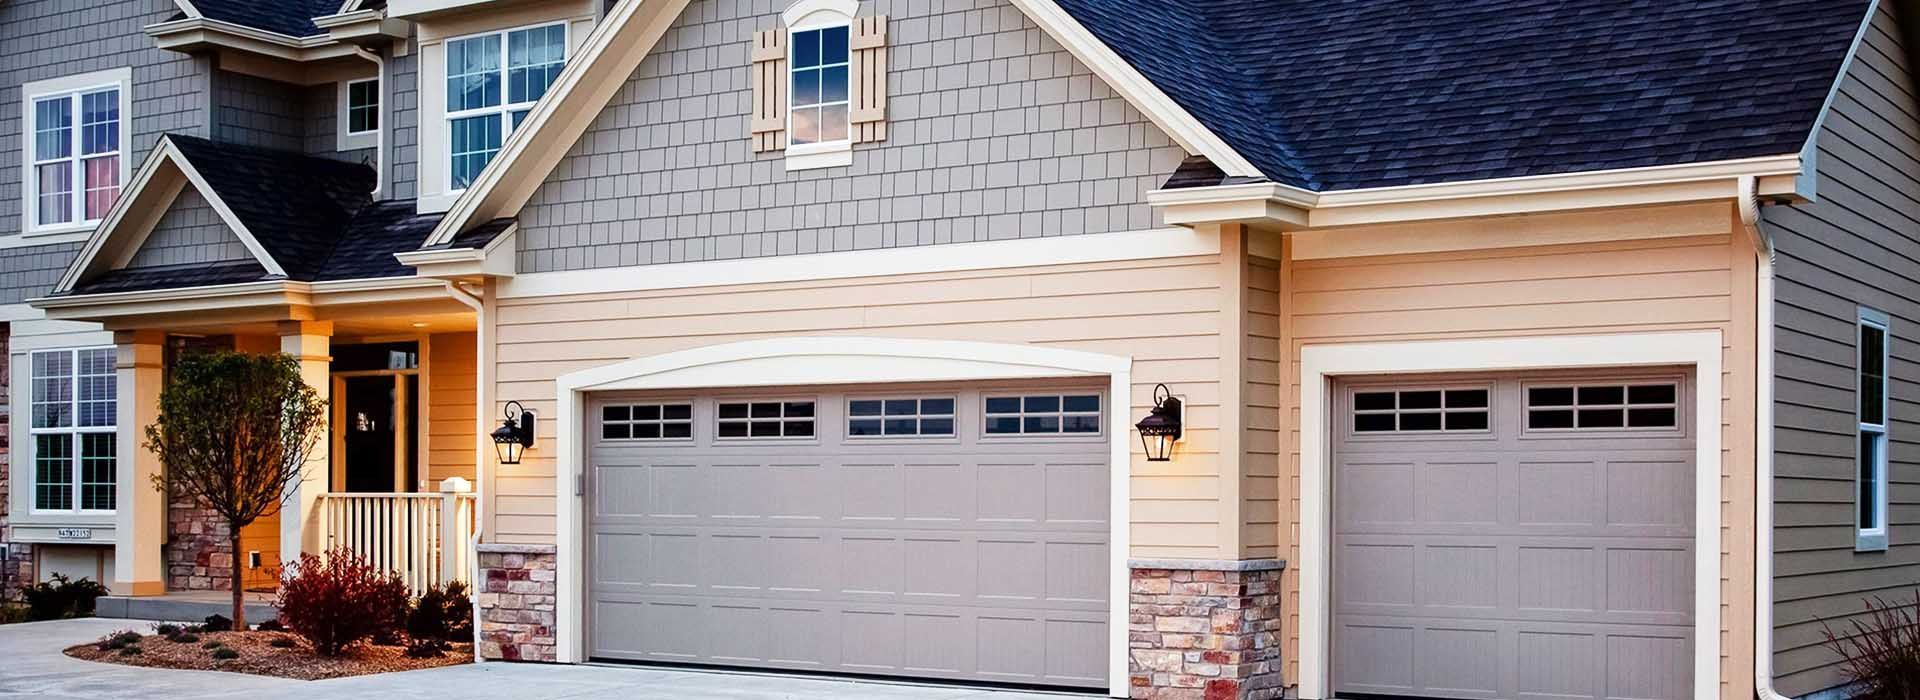 When To Call A Professional For Garage Door Installation In Okc And Oklahoma City Systems Inc If You Require Emergency Service